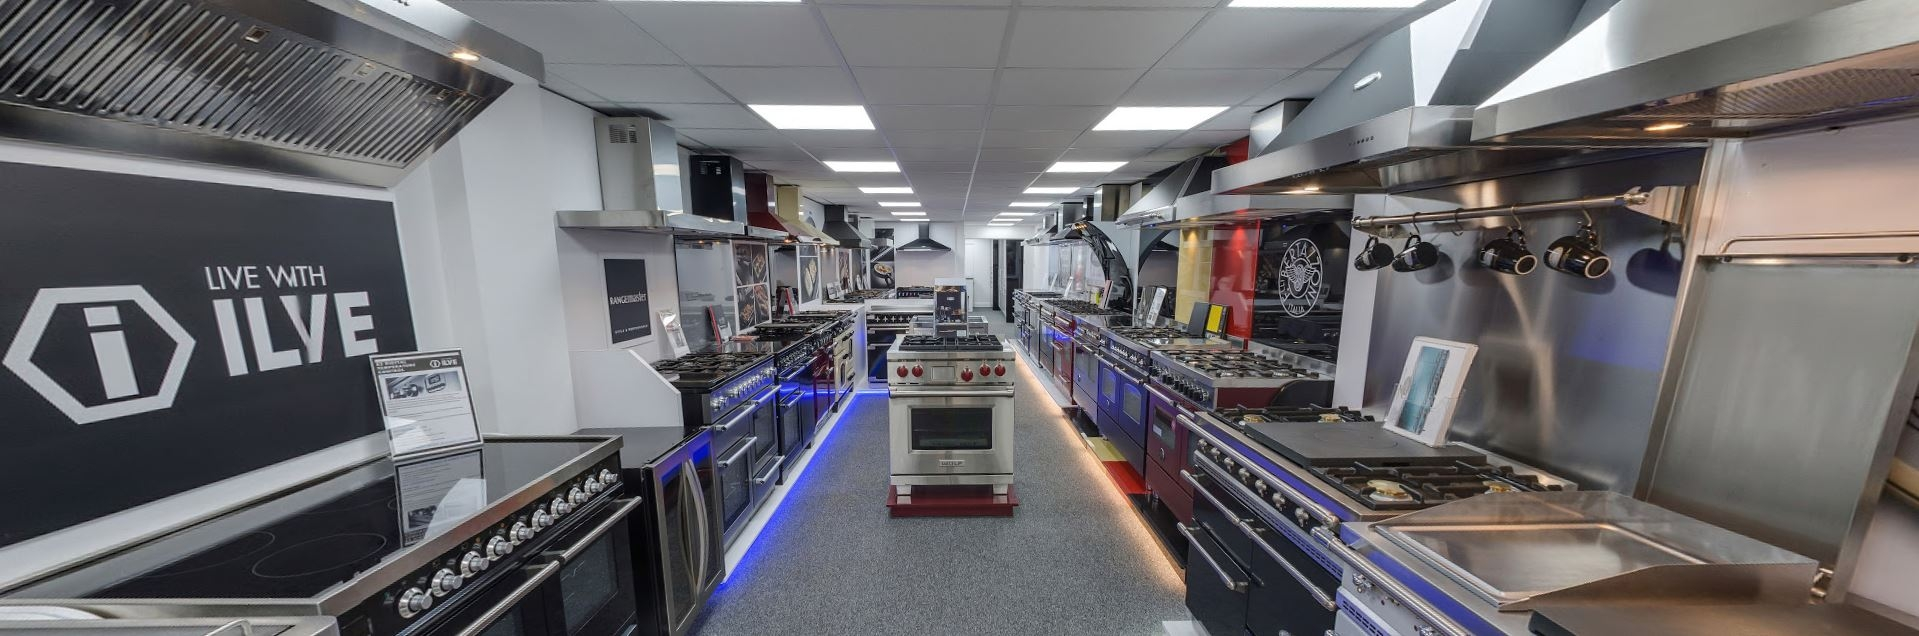 Molesey Refrigeration Centre Shop Wide Angle